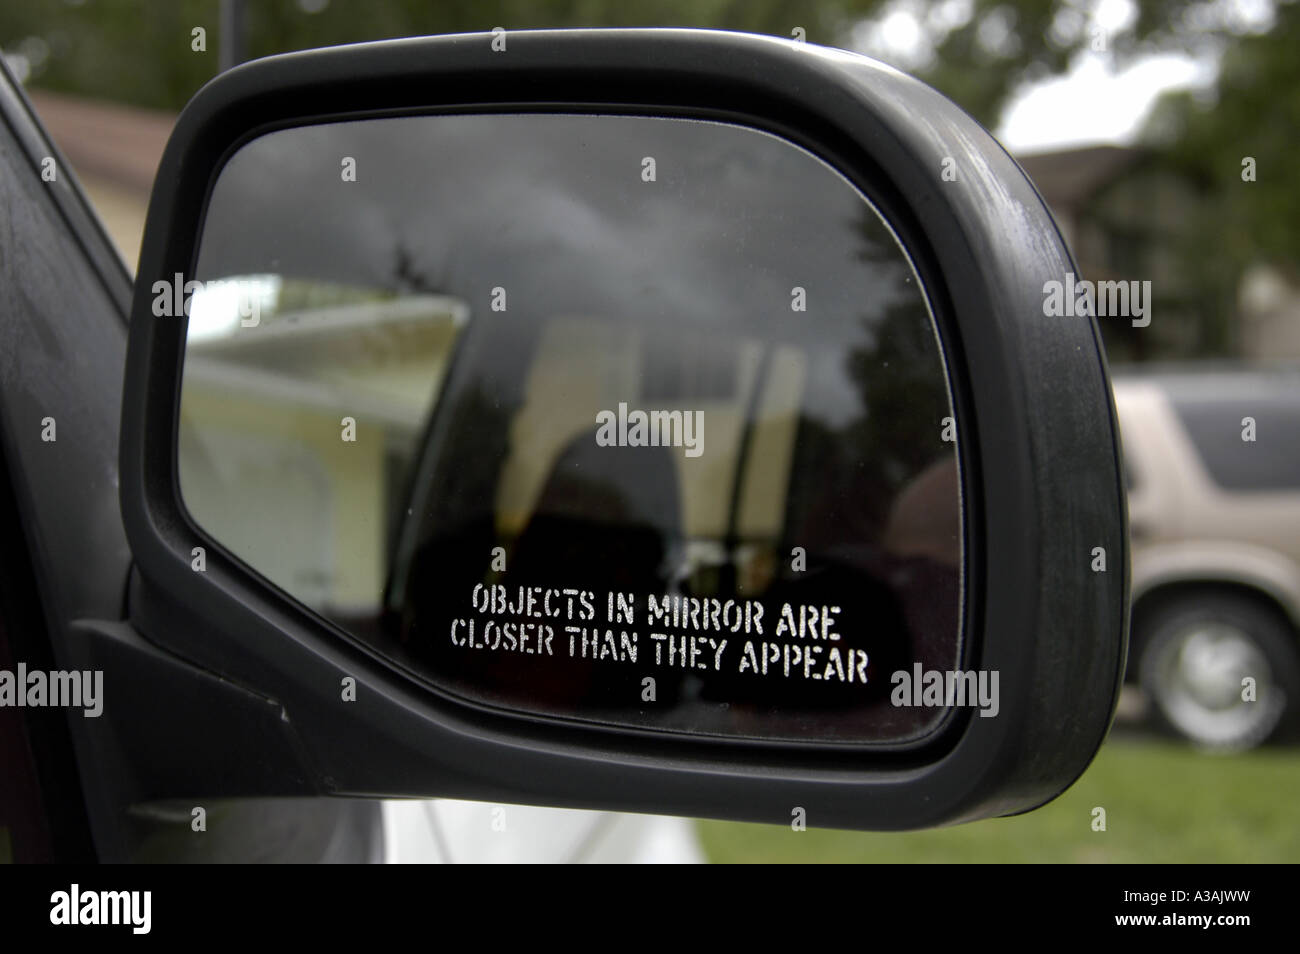 Objects In Mirror Warning On Rear View 4 - Stock Image